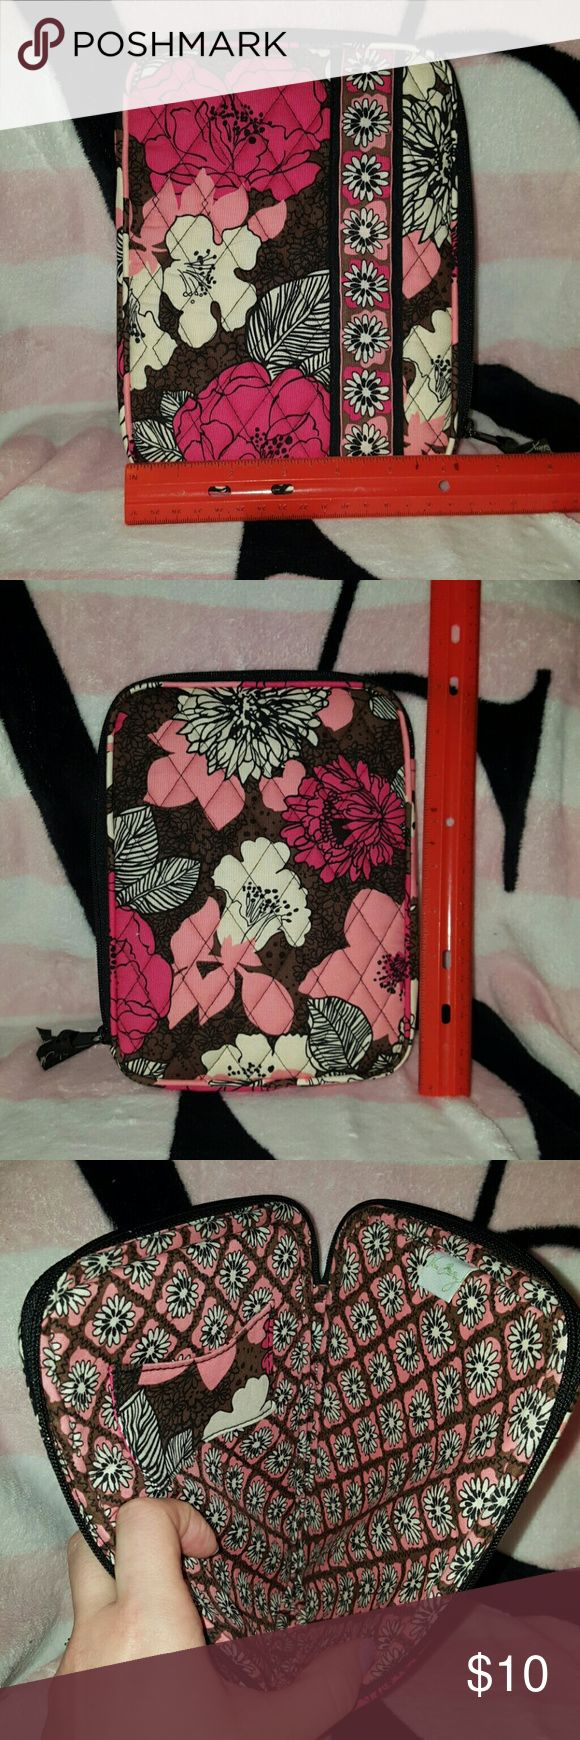 Vera Bradley tablet cover Used but never left the house Vera Bradley Accessories Laptop Cases